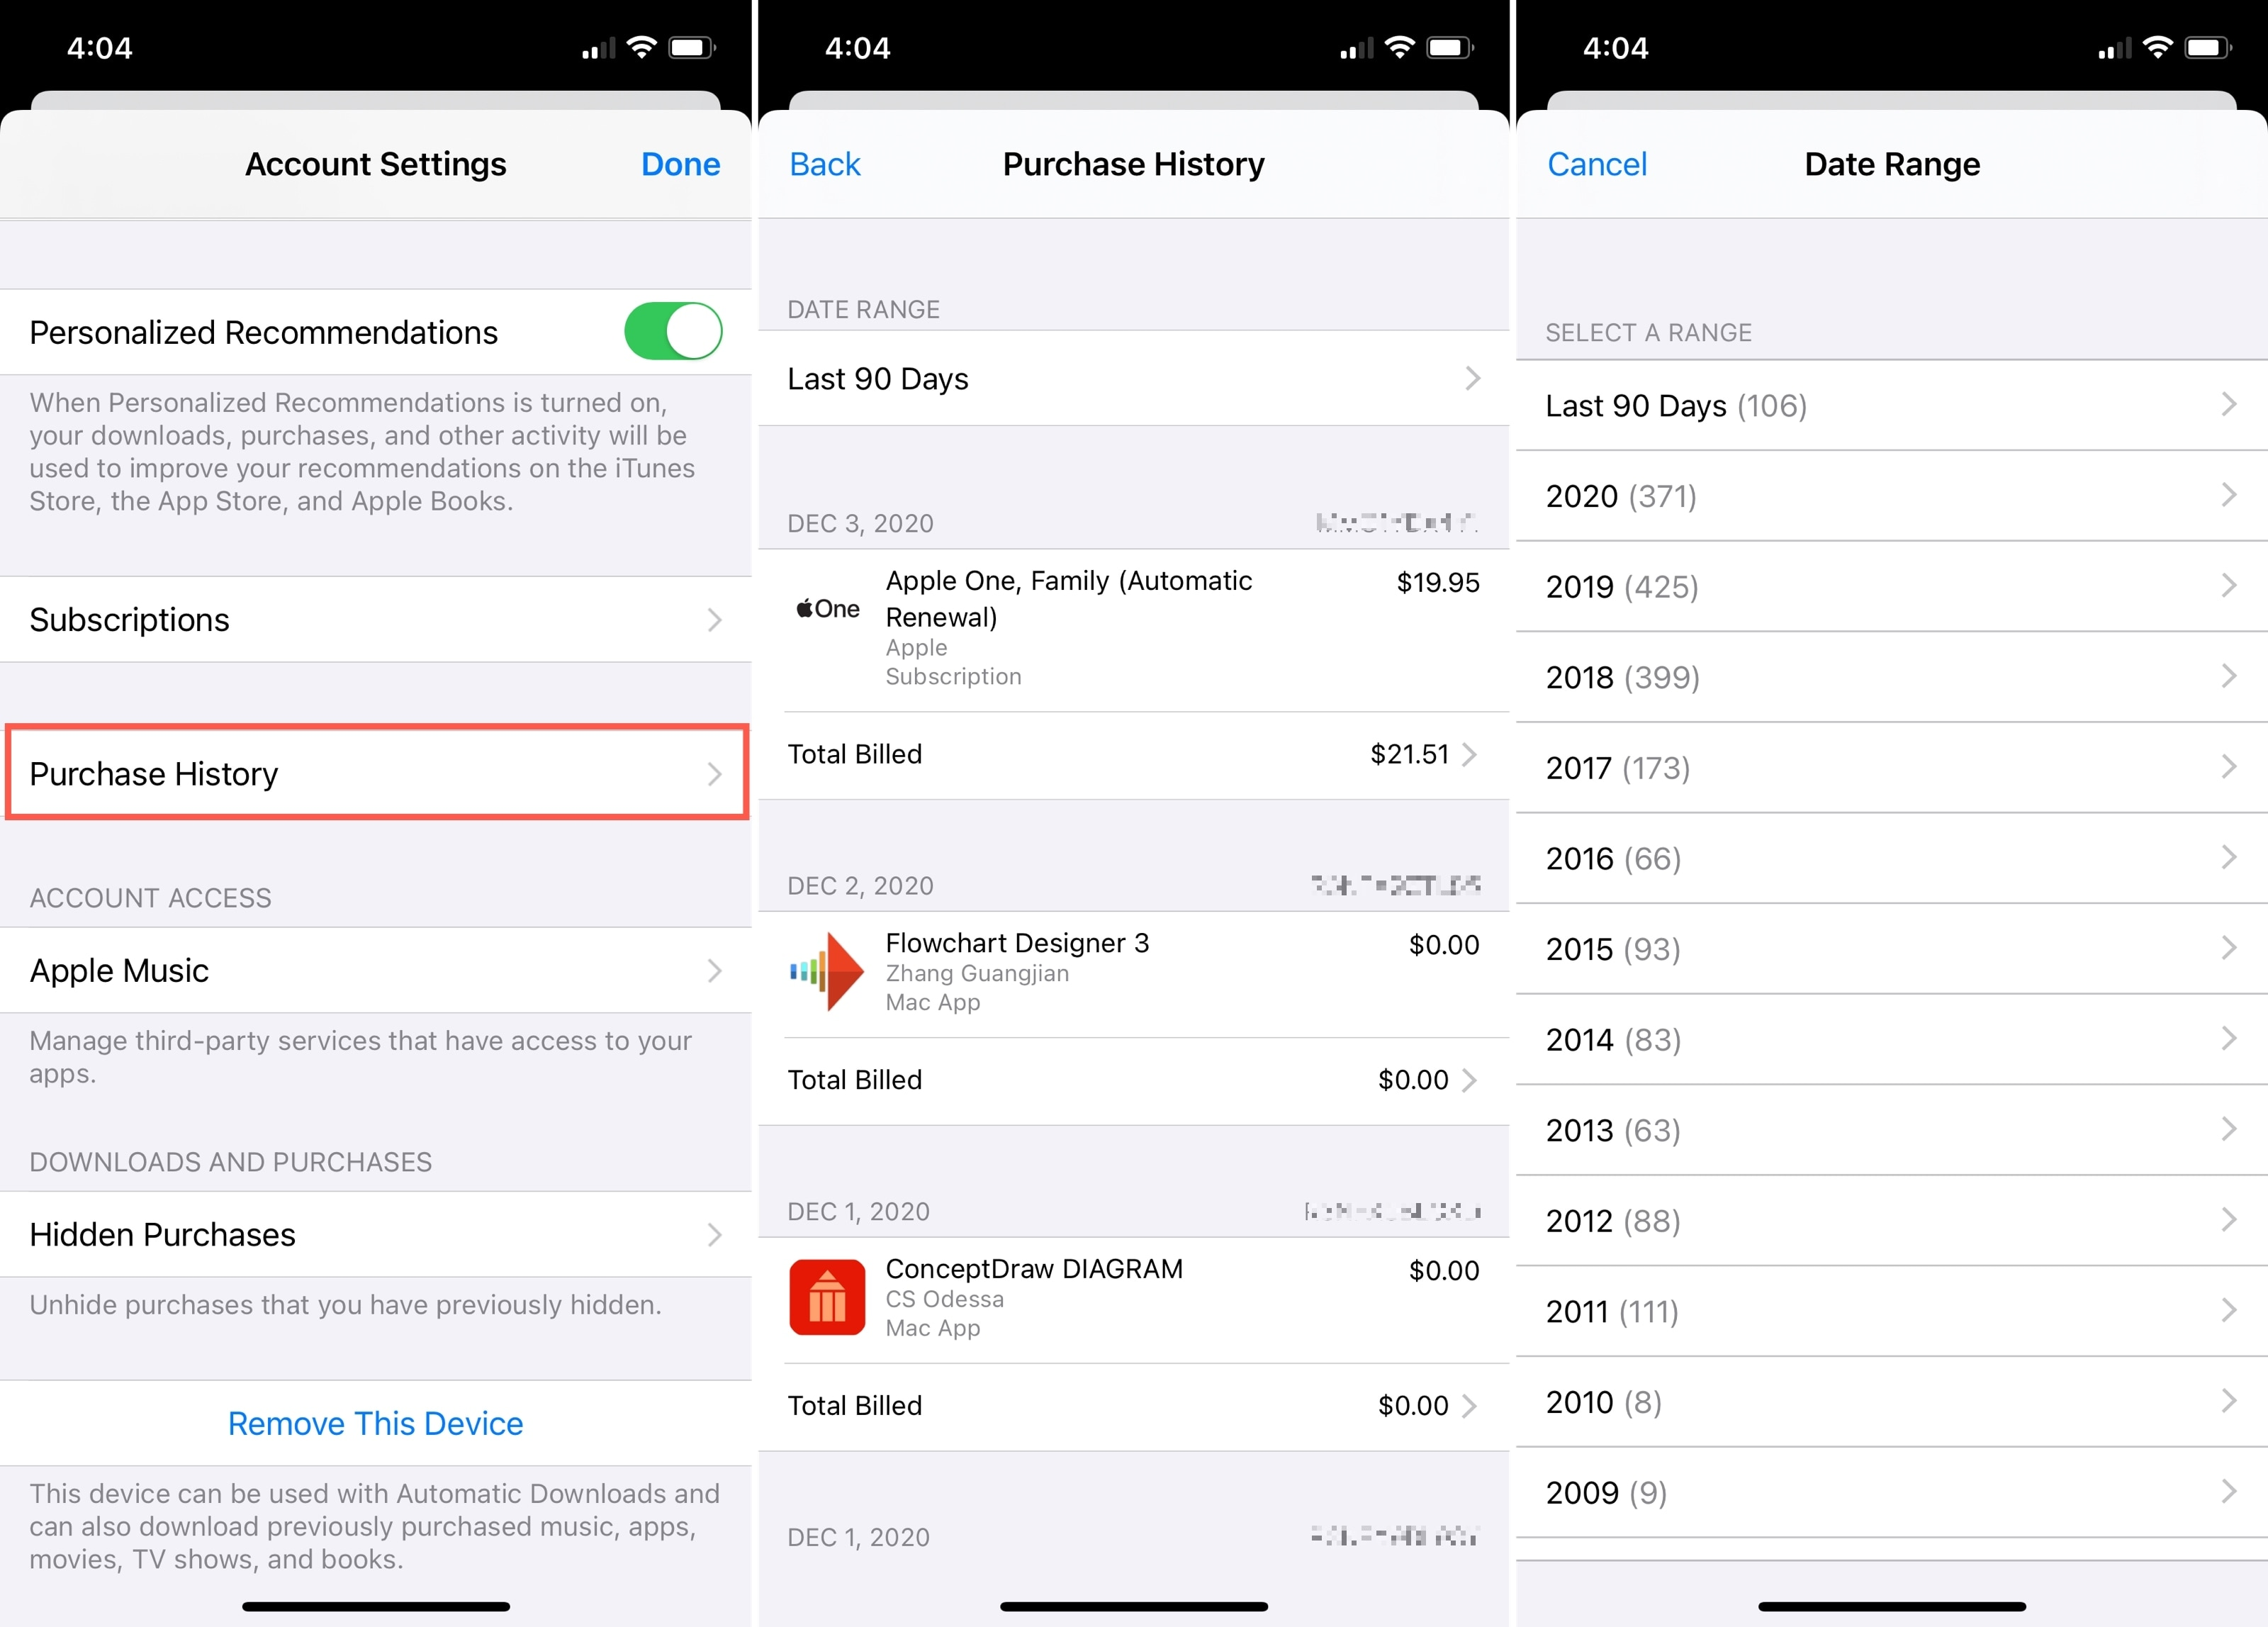 Media Purchases and History with Prices on iPhone